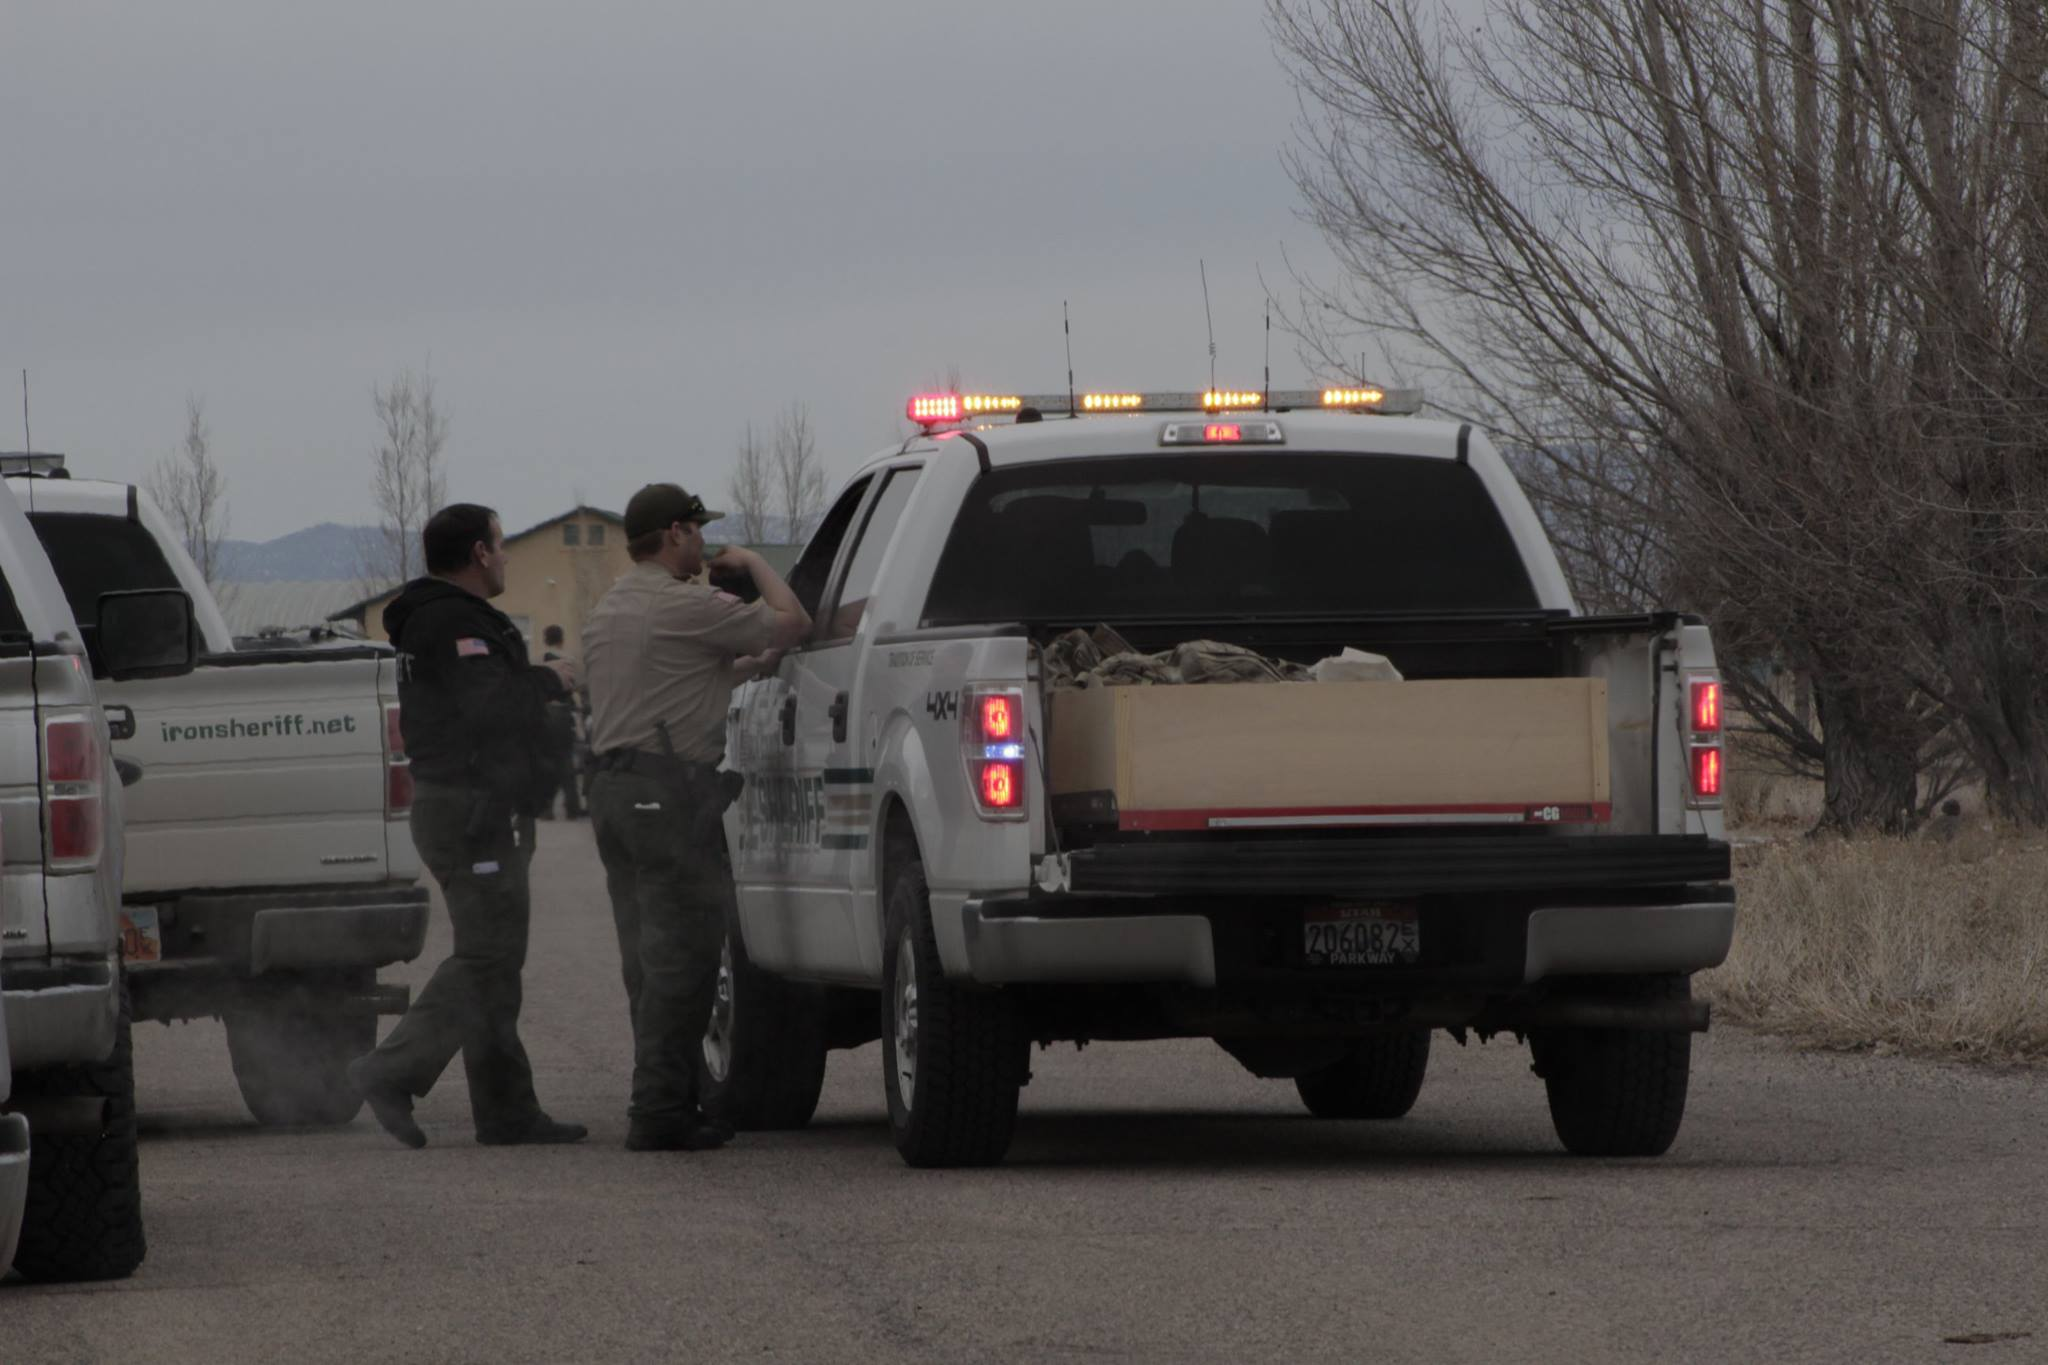 Multiple law enforcement agencies responded to a home on the 5341 N. 2900 West block of the Cedar Valley area of Cedar City Tuesday morning where a domestic dispute was reported by a neighbor and ended with a man found dead inside his home. Cedar City, Utah, Jan. 19, 2016   Photo by Carin Miller, St. George News / Cedar City News